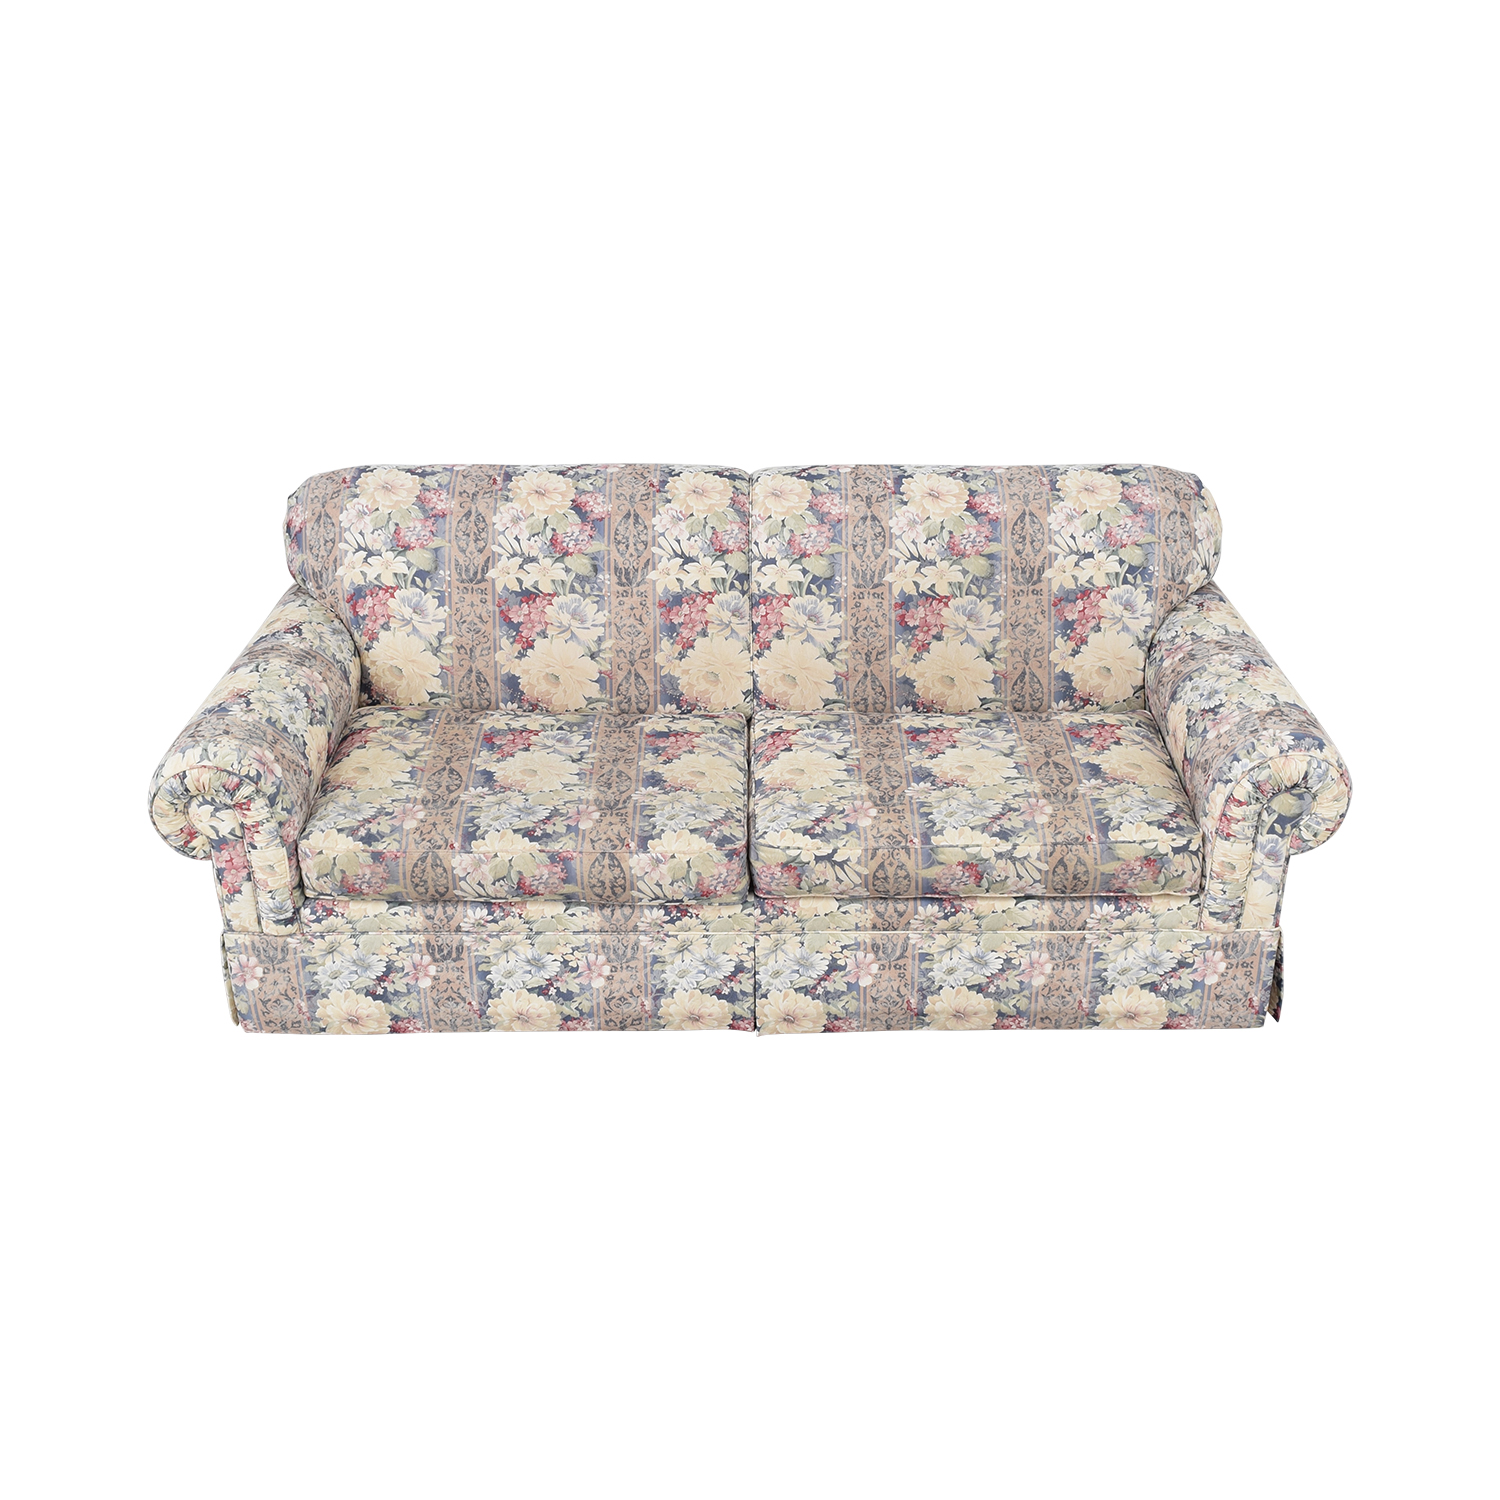 La-Z-Boy La-Z-Boy Two Cushion Sofa pa